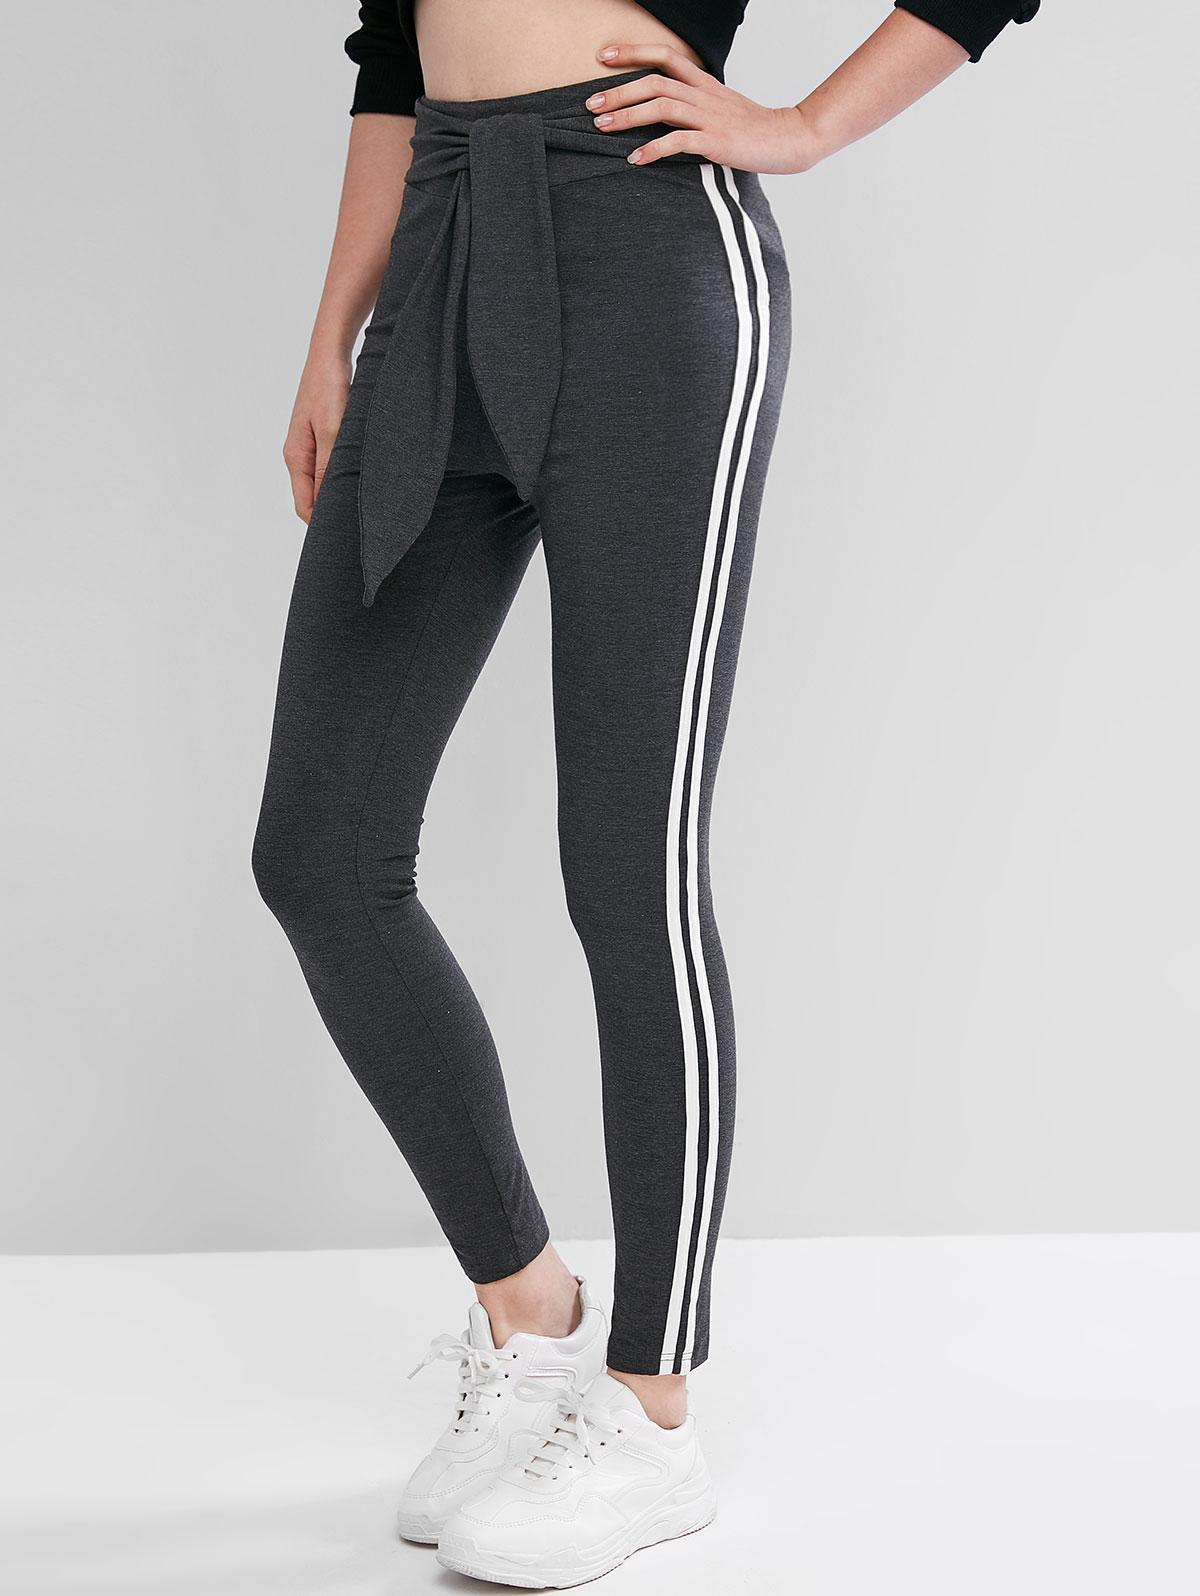 ZAFUL Tie Waist High Waisted Racing Stripes Leggings фото